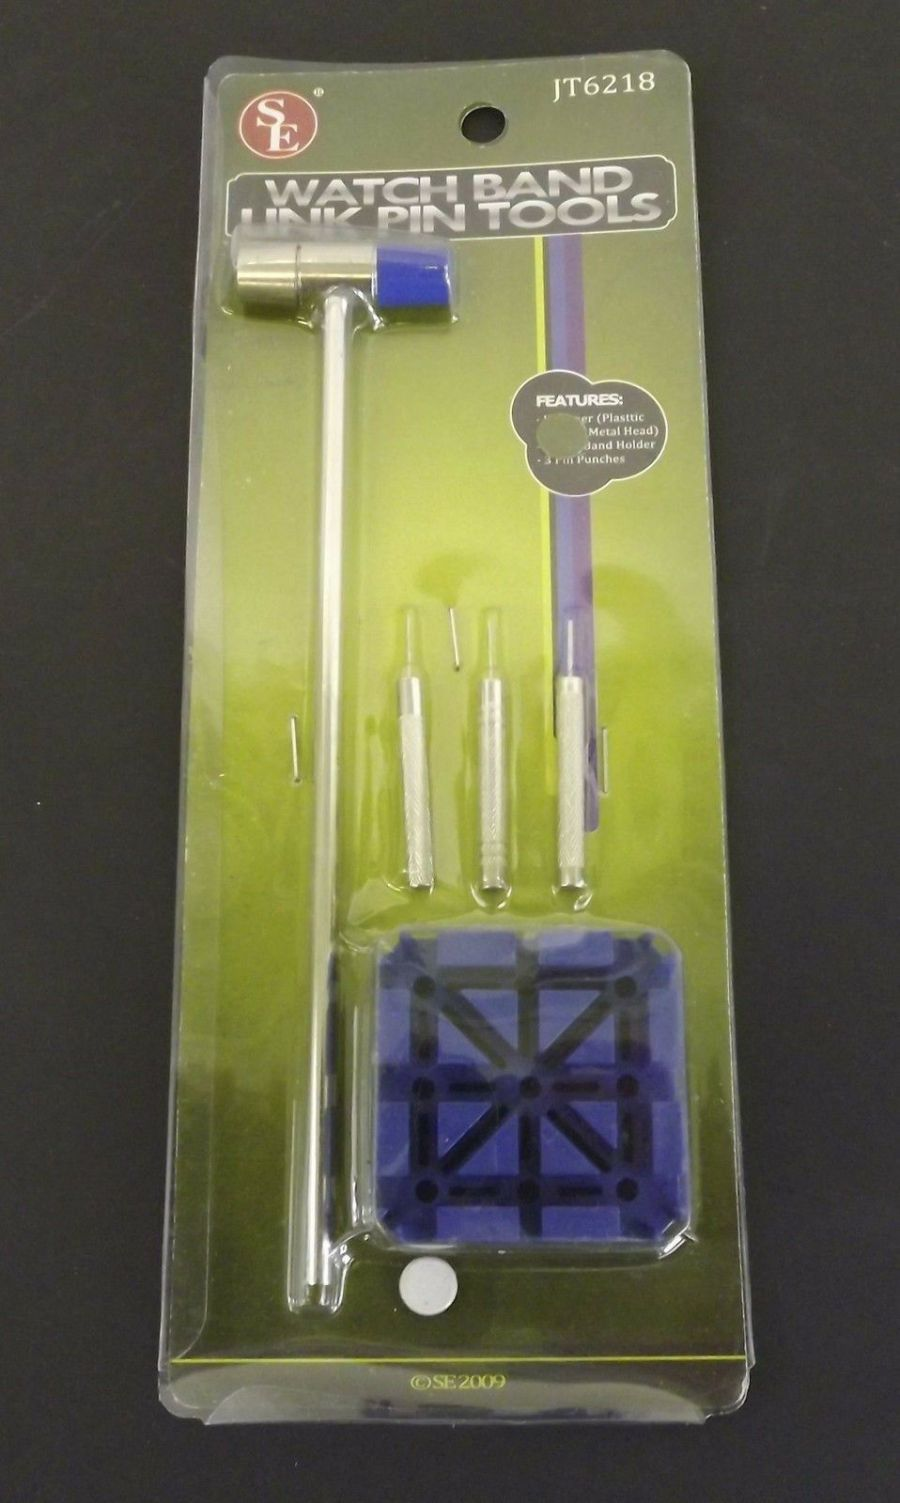 BRAND NEW Watch Band Link Pin Tool Watch Repair Tool 5pc Set SIZE YOUR OWN WATCH 1